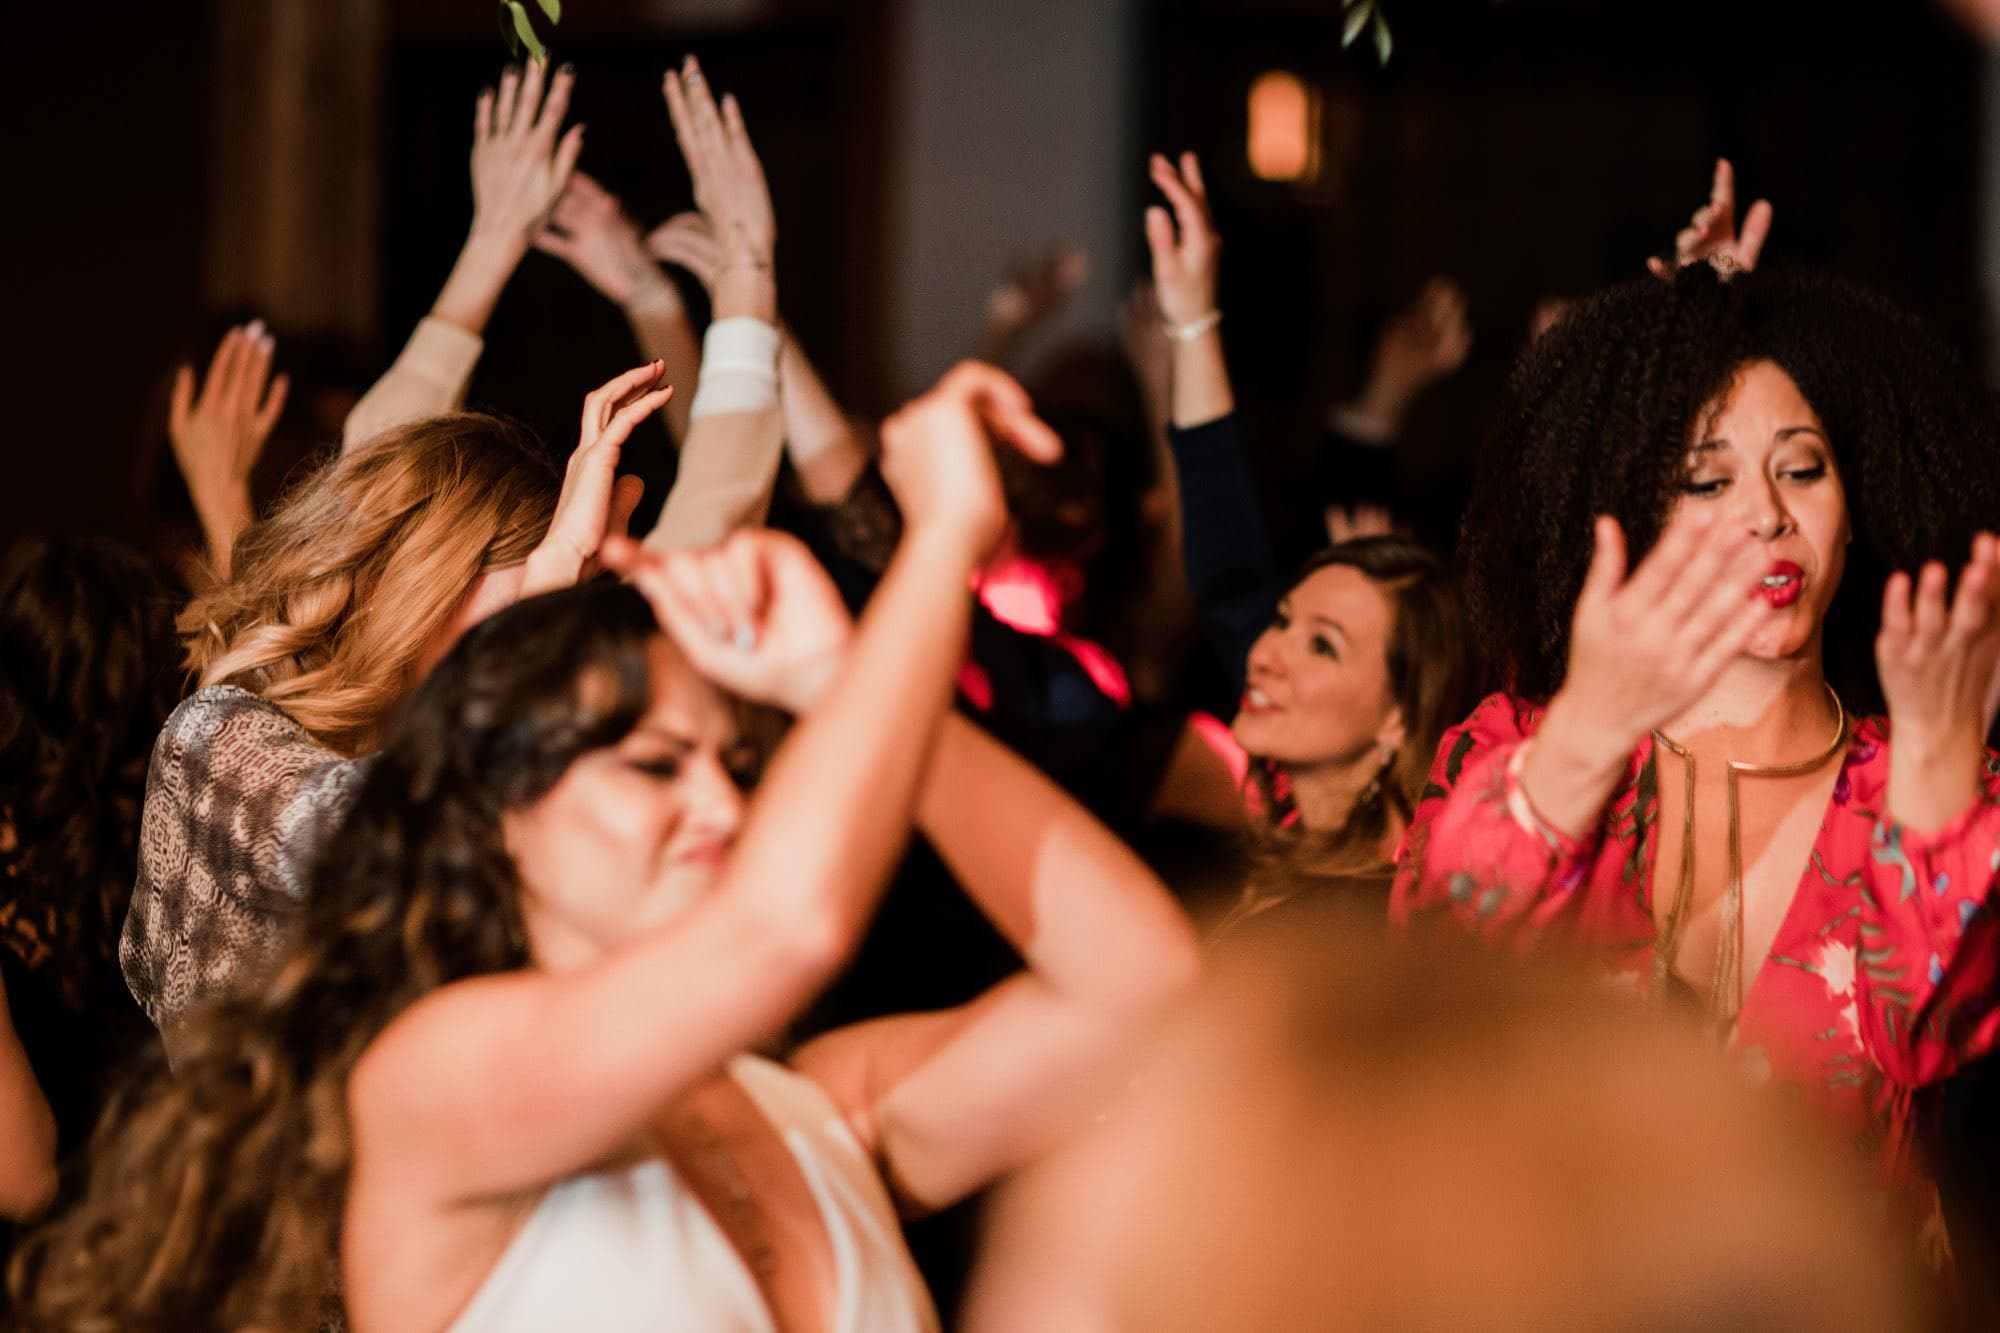 Guests dancing at a wedding with their arms up